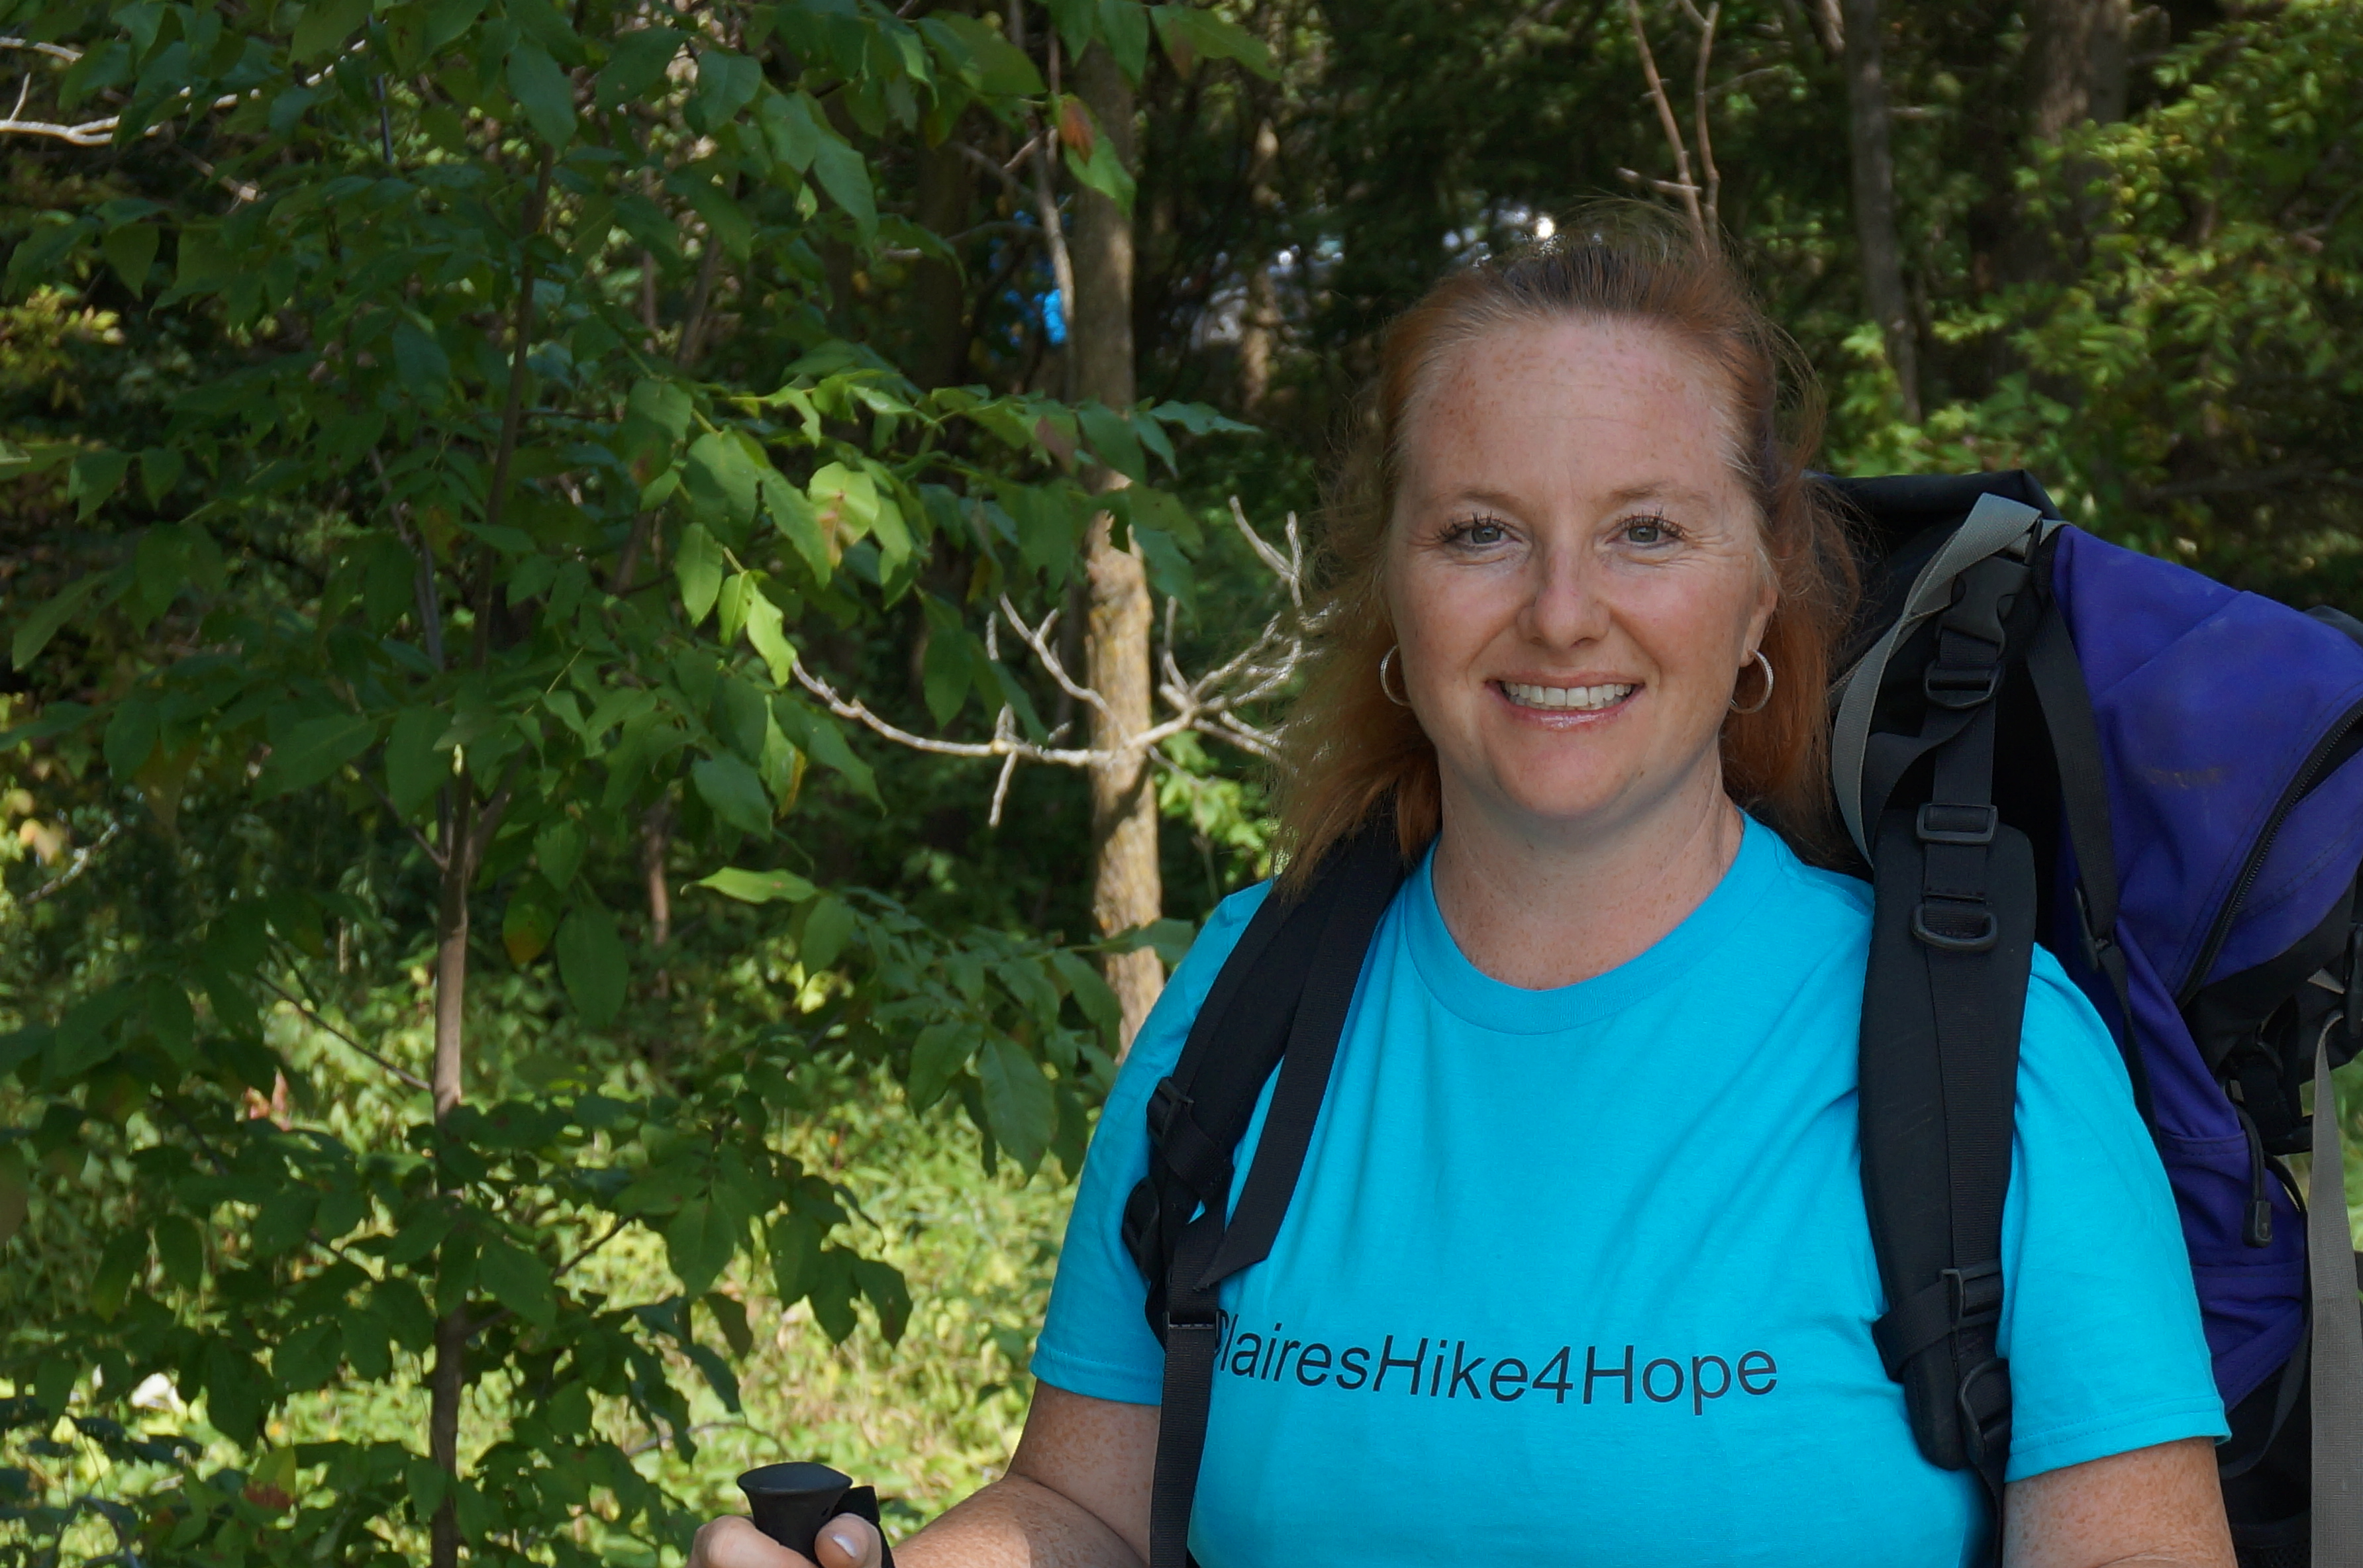 Claire plans to walk 800 kilometres to raise awareness and funds toward local suicide prevention programs